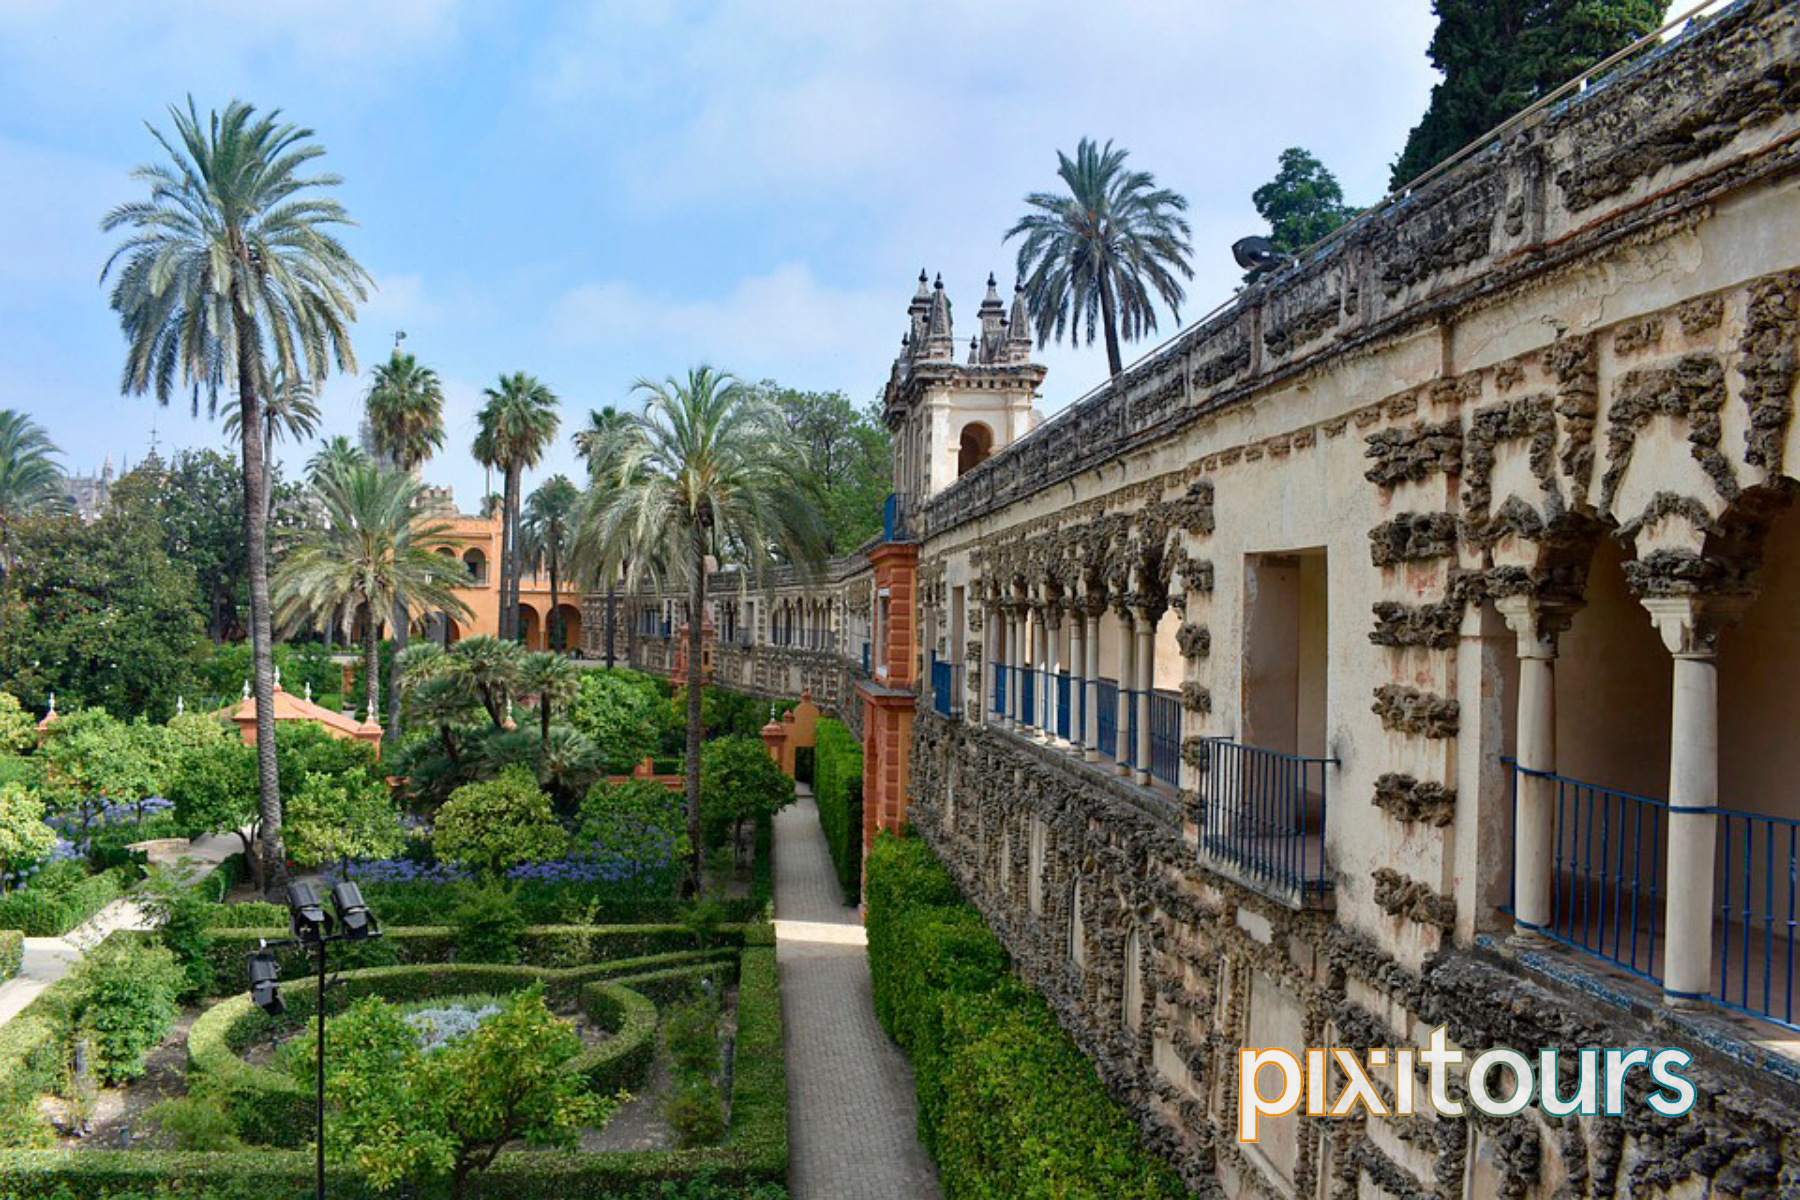 The wide view of the Alcazar Palace Gardens